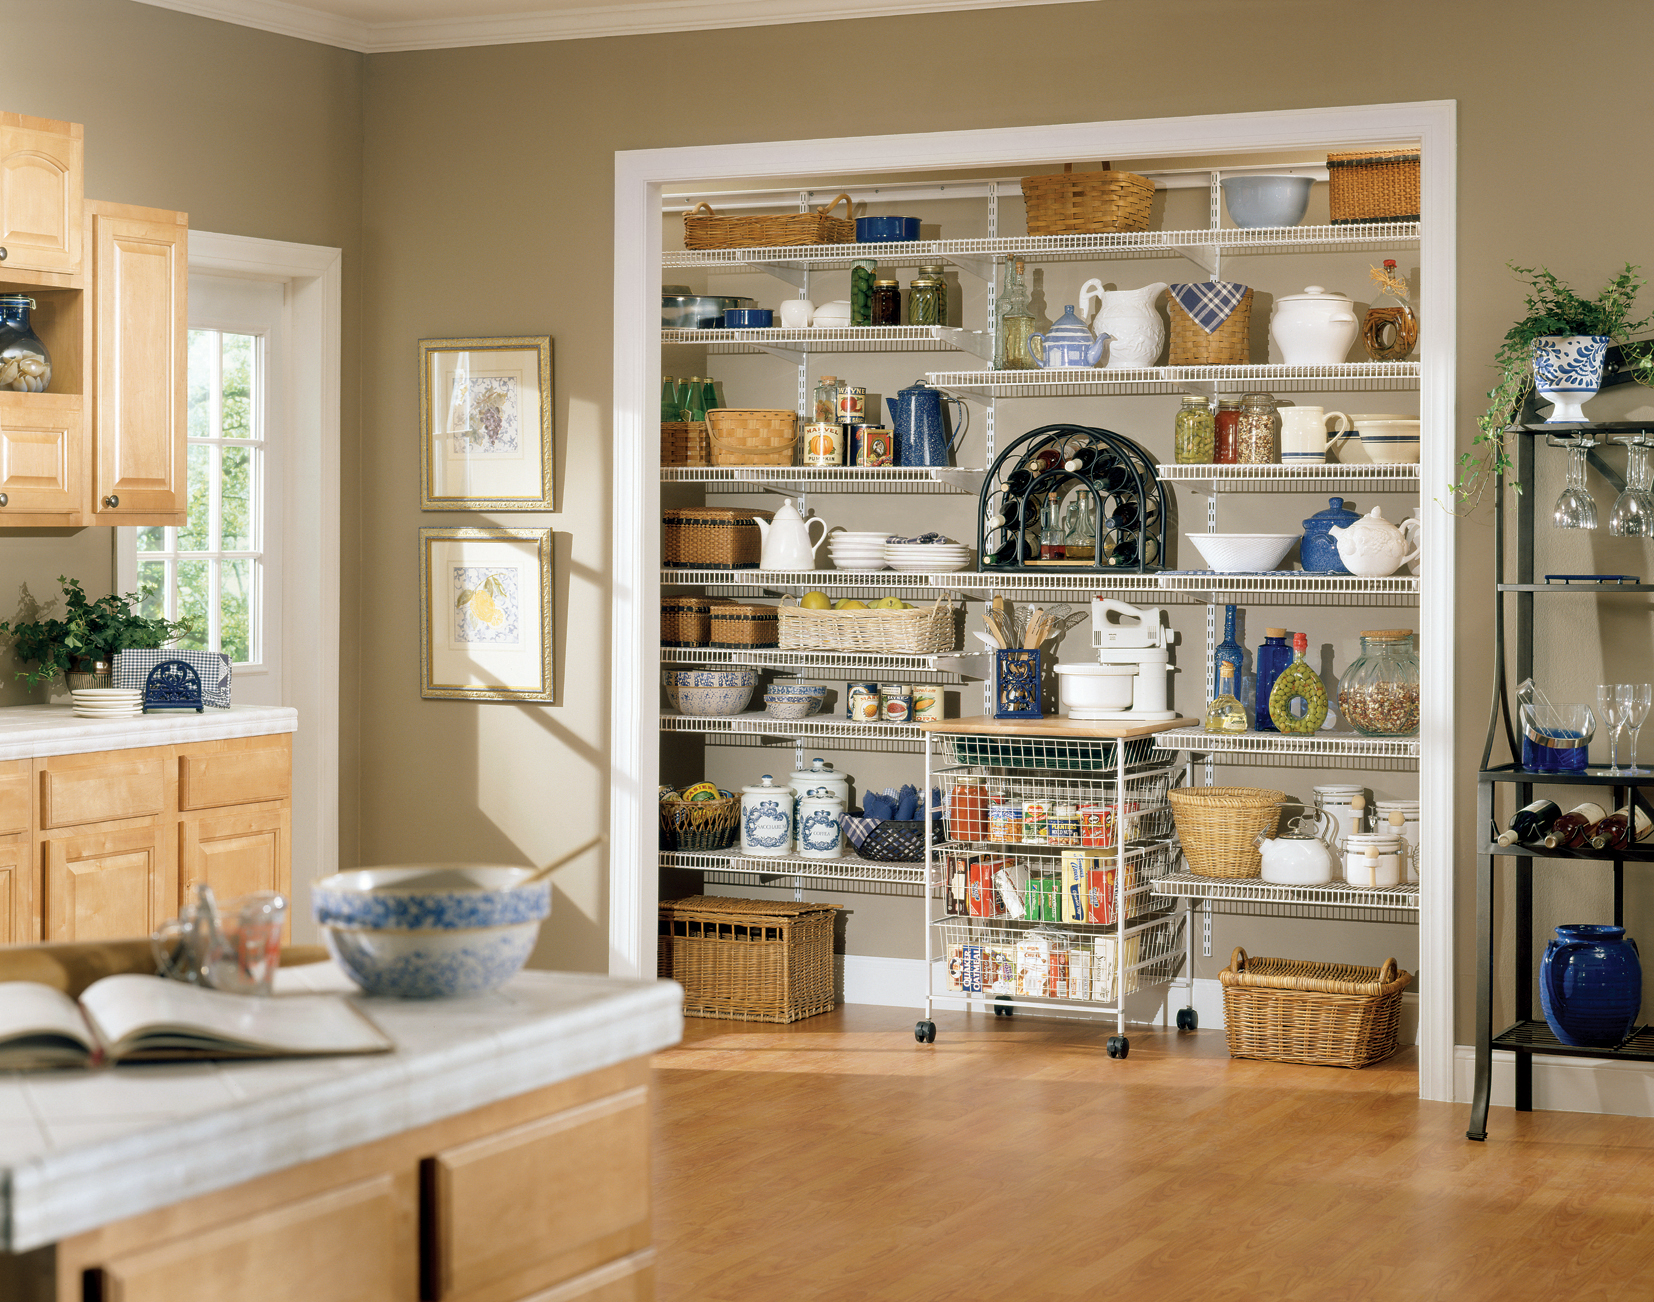 kitchen pantry shelving systems moen pull down faucet press and public relations